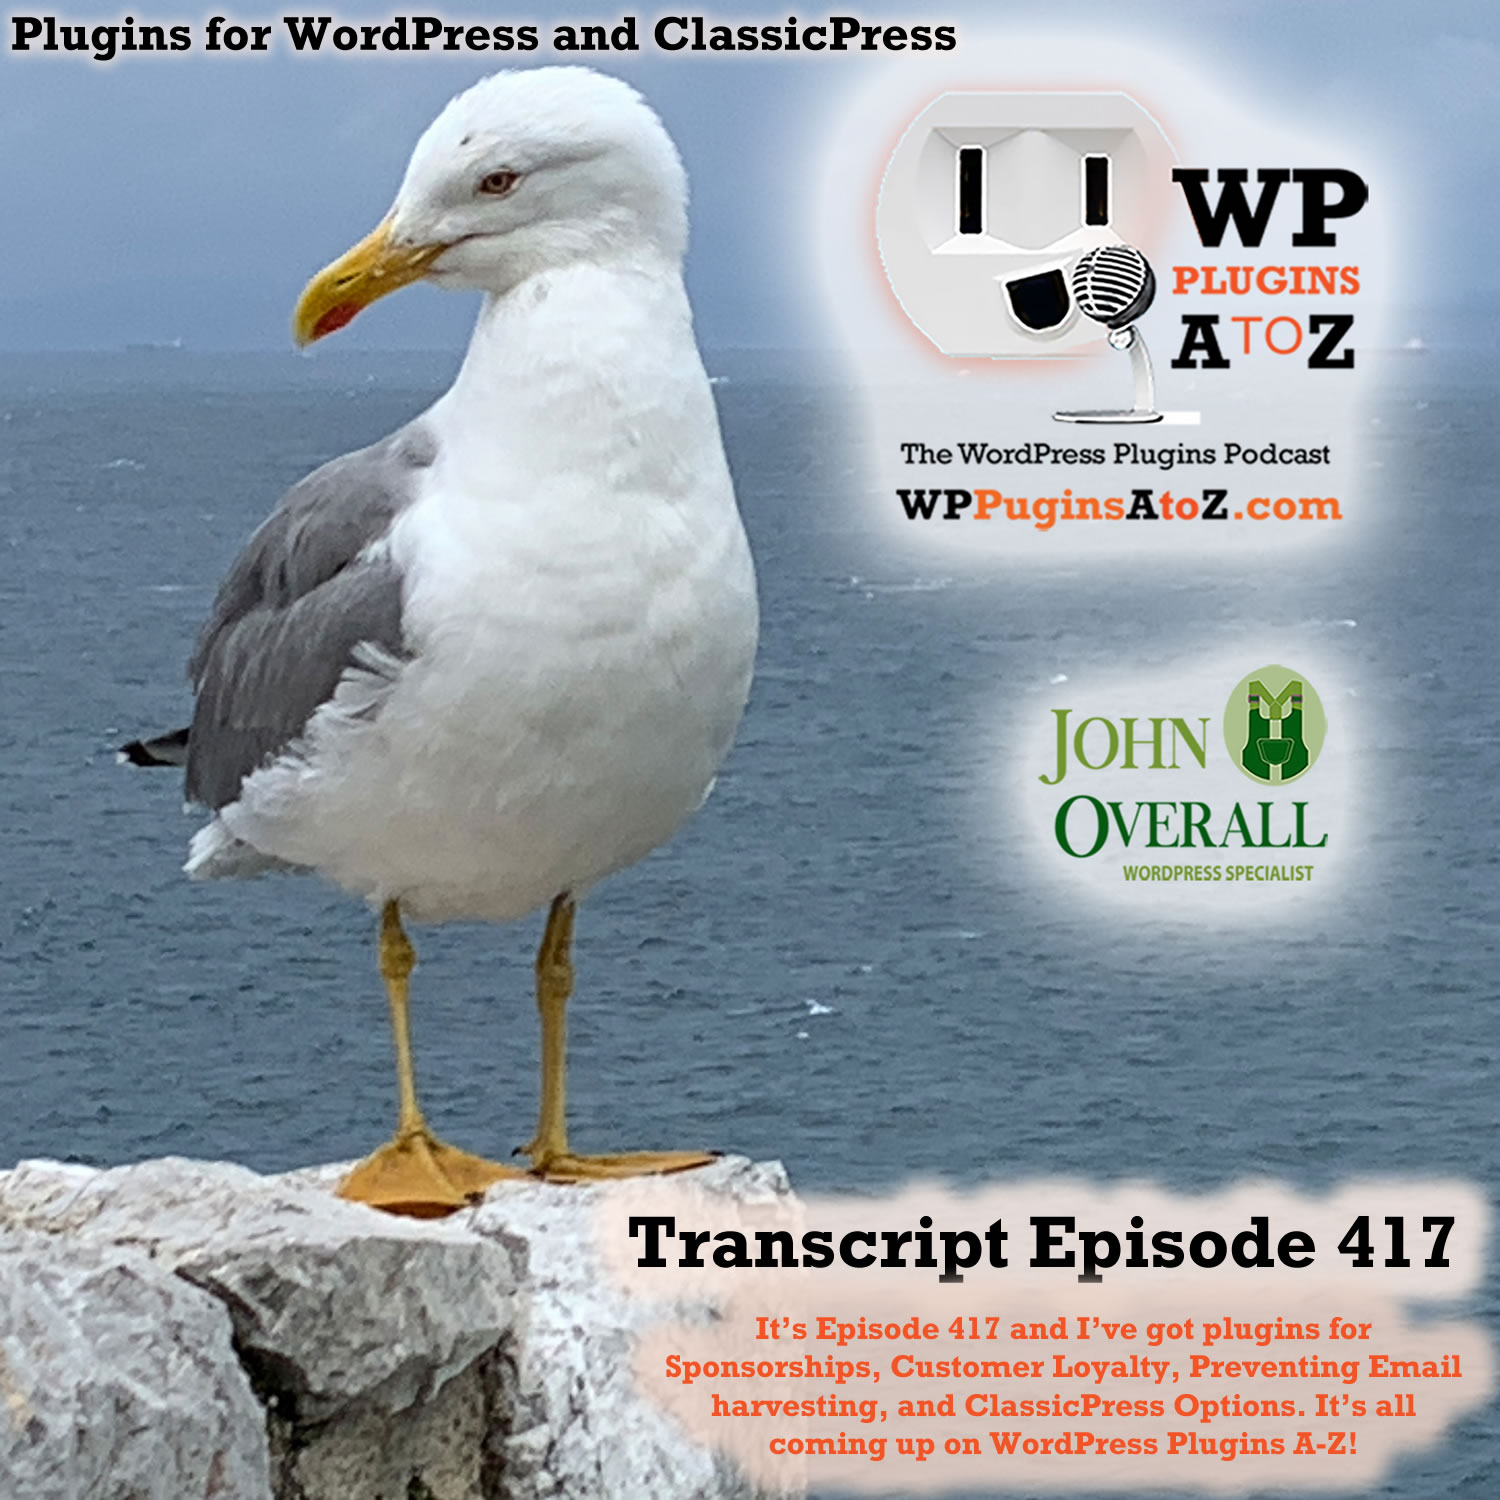 It's Episode 417 and I've got plugins for Sponsorships, Customer Loyalty, Preventing Email Harvesting, and ClassicPress Options, all coming up on WordPress Plugins A-Z!